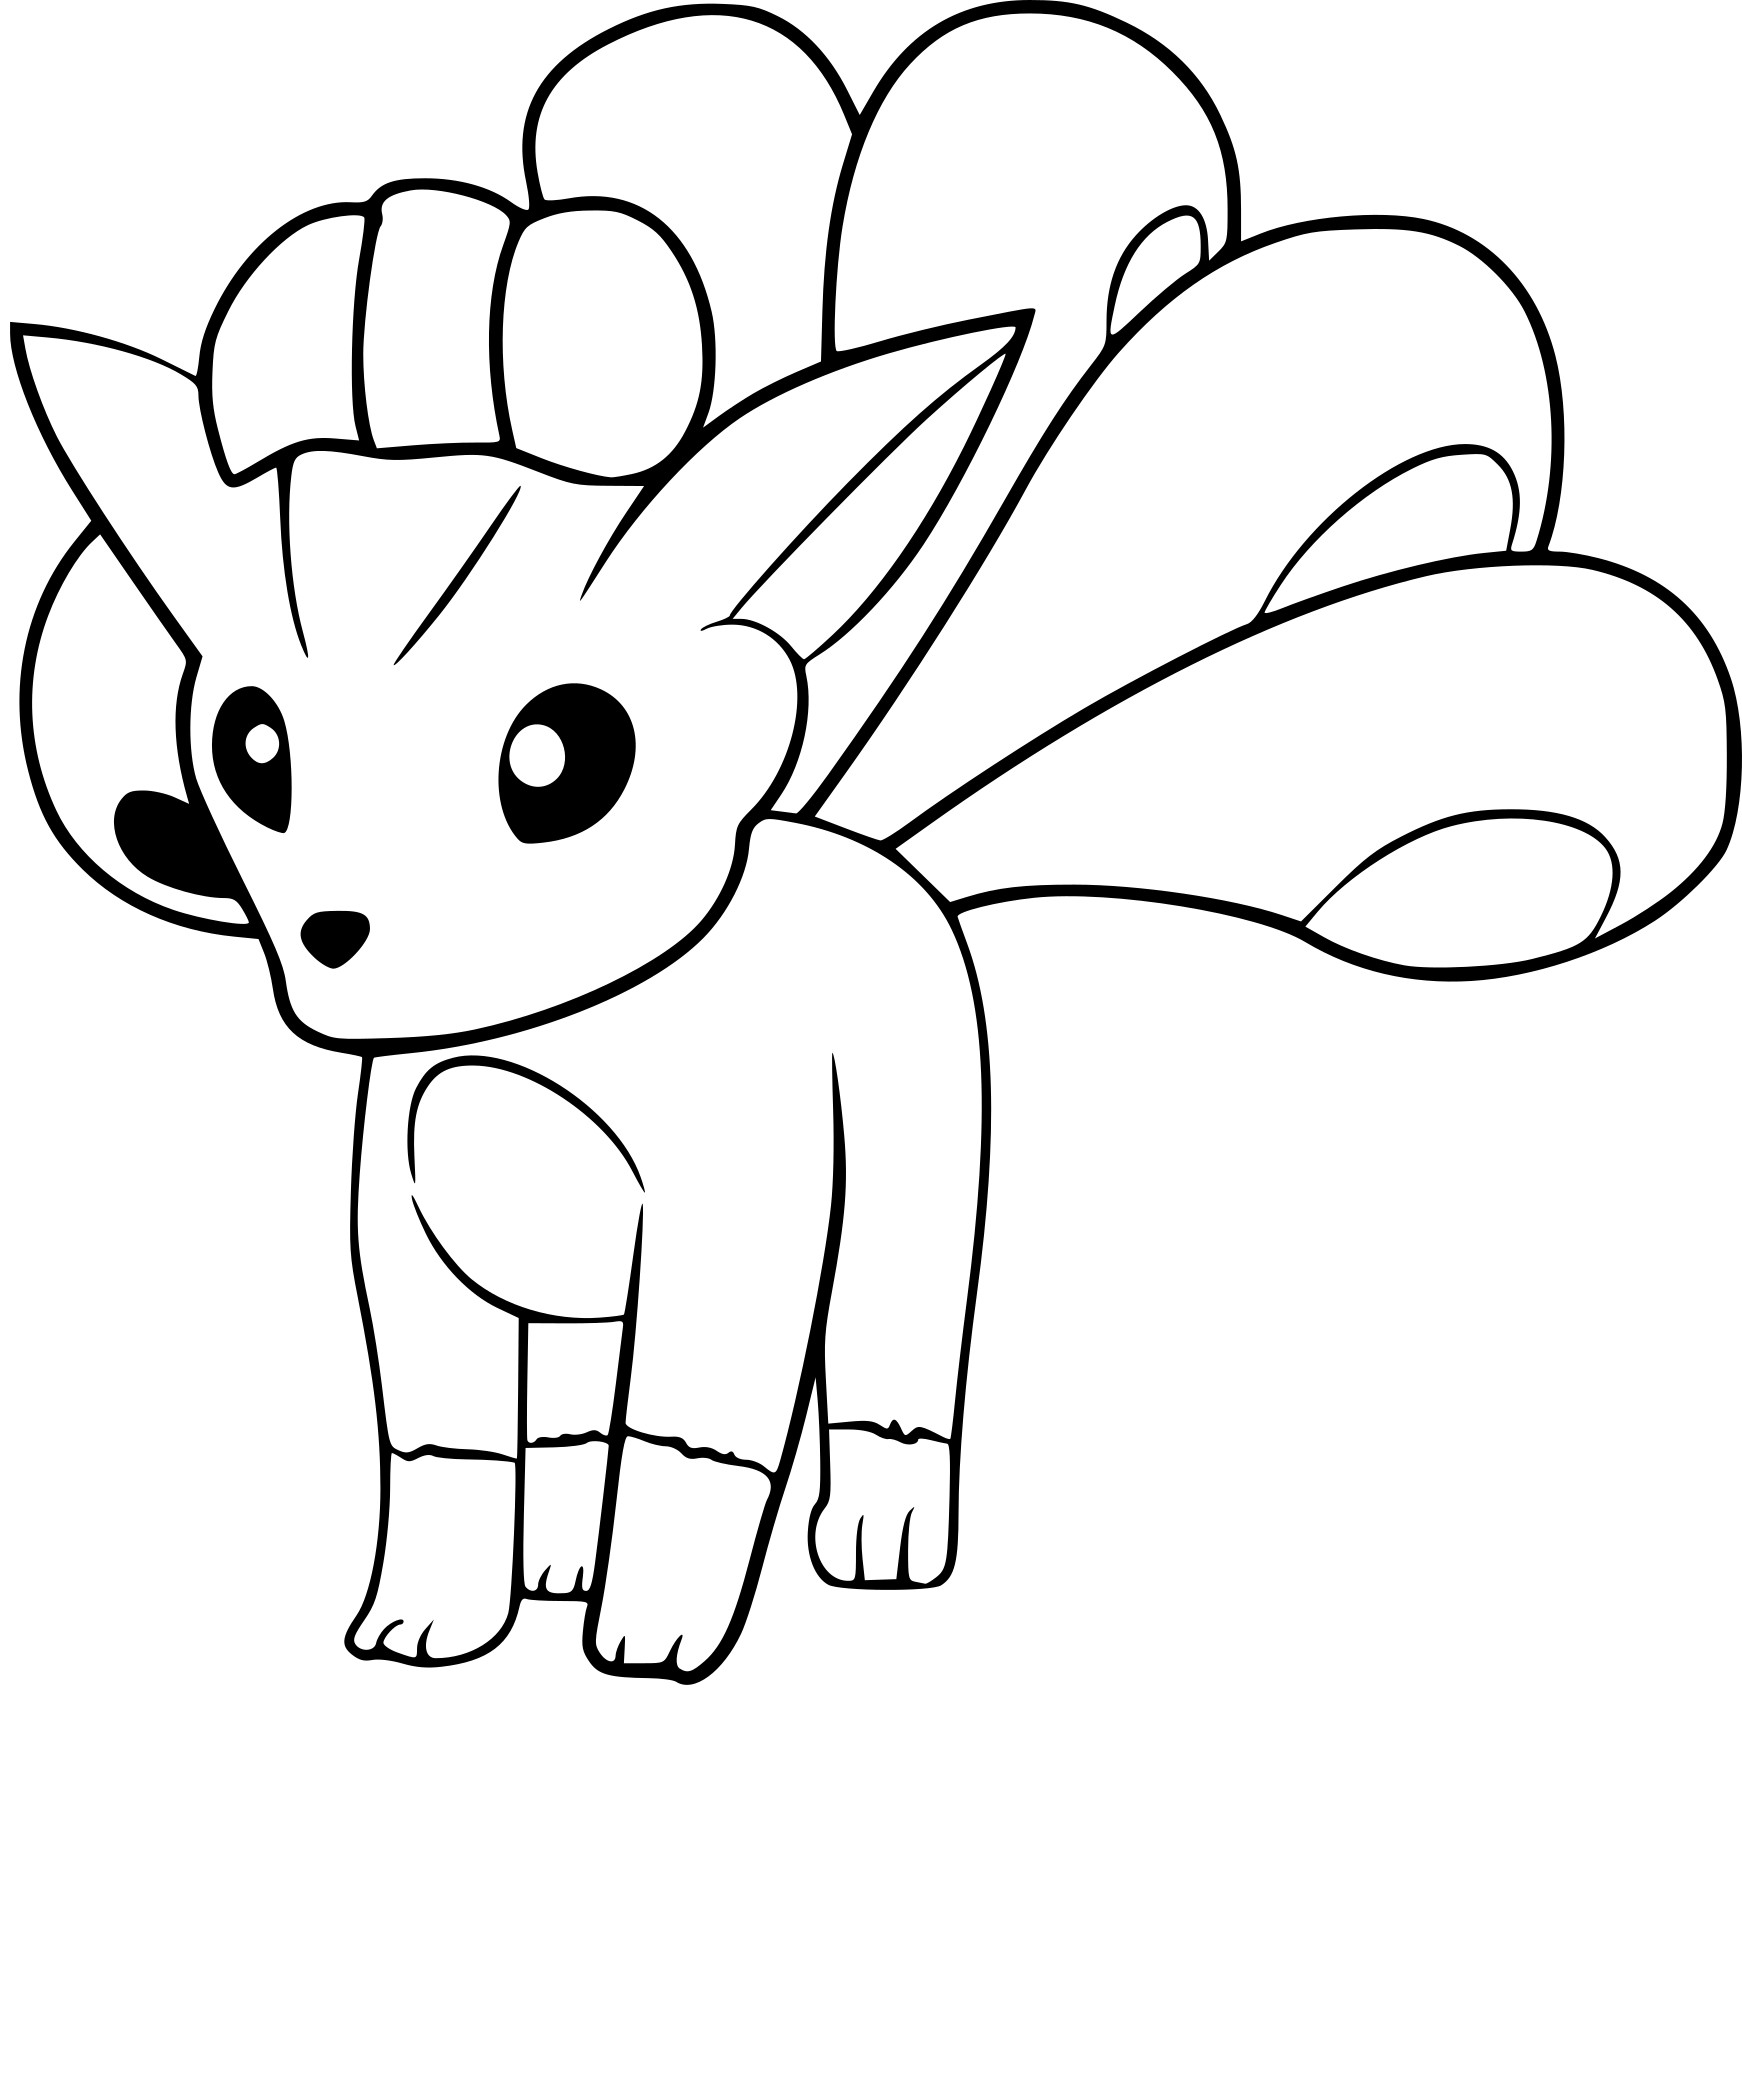 Coloriage goupix pokemon go imprimer - Dessins de pokemon ...